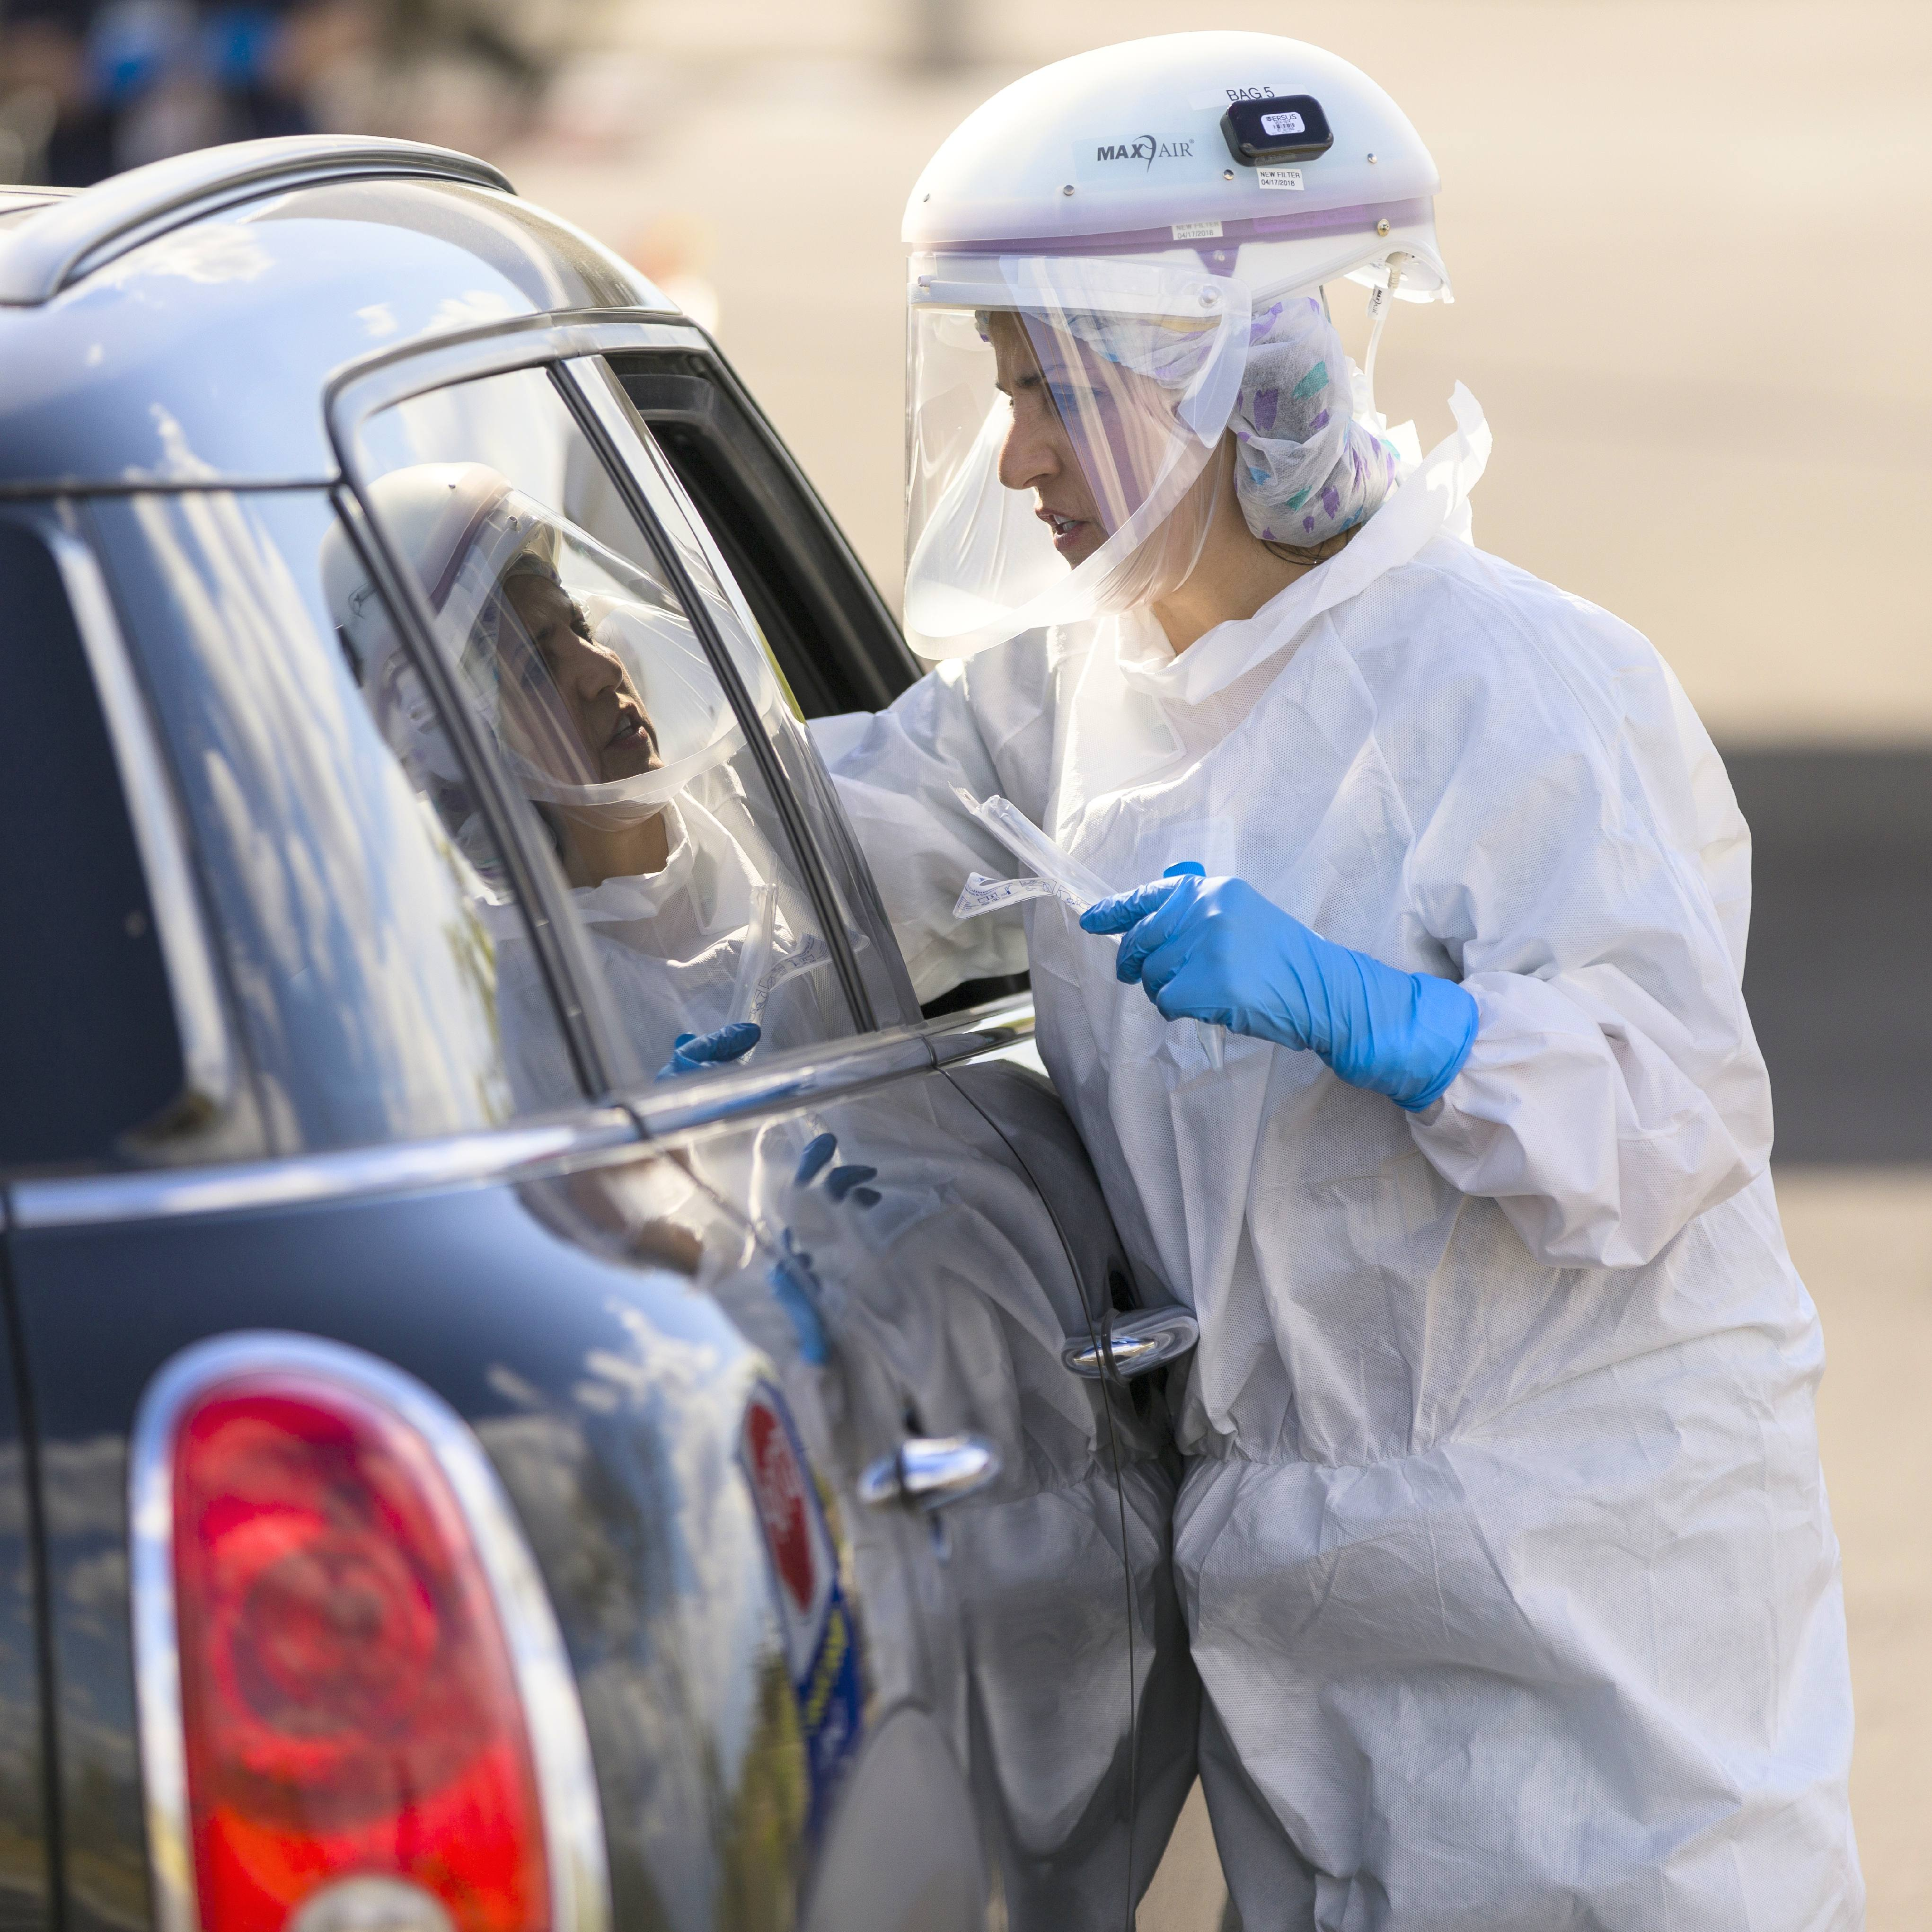 a Mayo Clinic medical staff person in Personal Protective Equipment, PPE, testing patients for COVID-19 who are in a car at a drive-up testing site